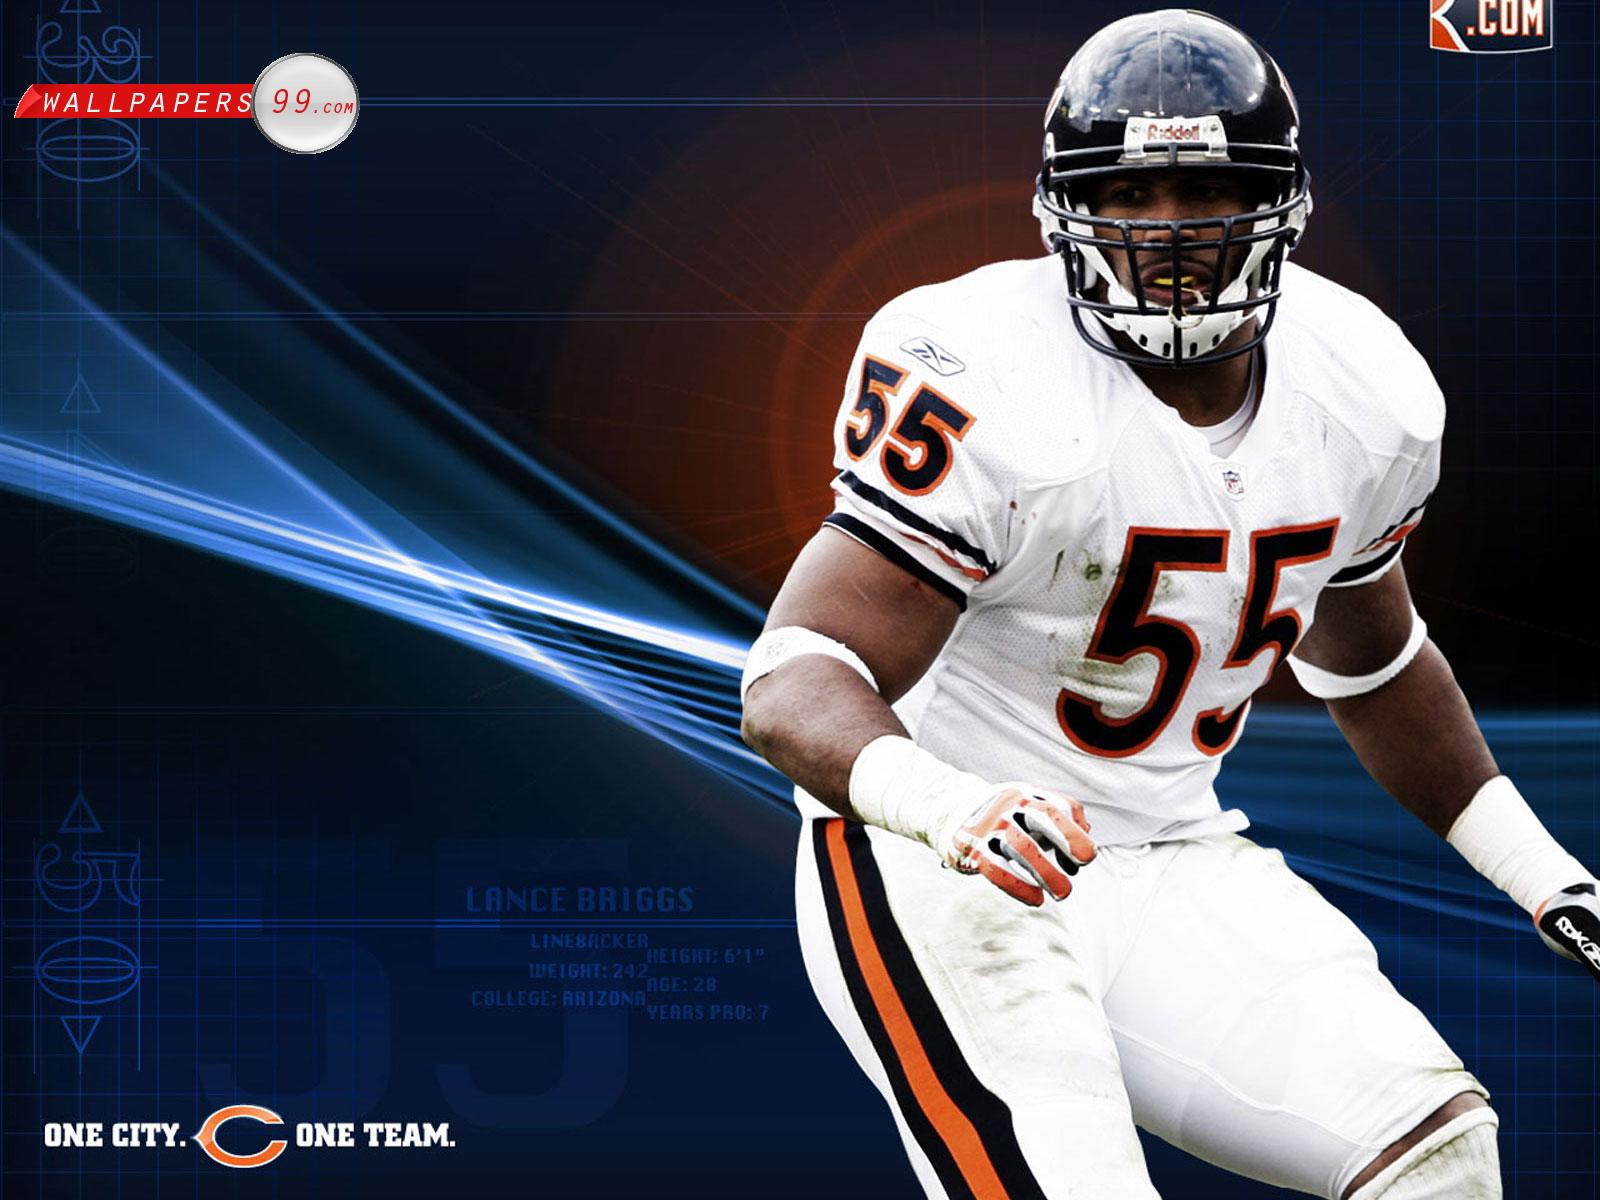 chicago bears 23977 12 13 2010 lance briggs wallpaper chicago bears 1600x1200